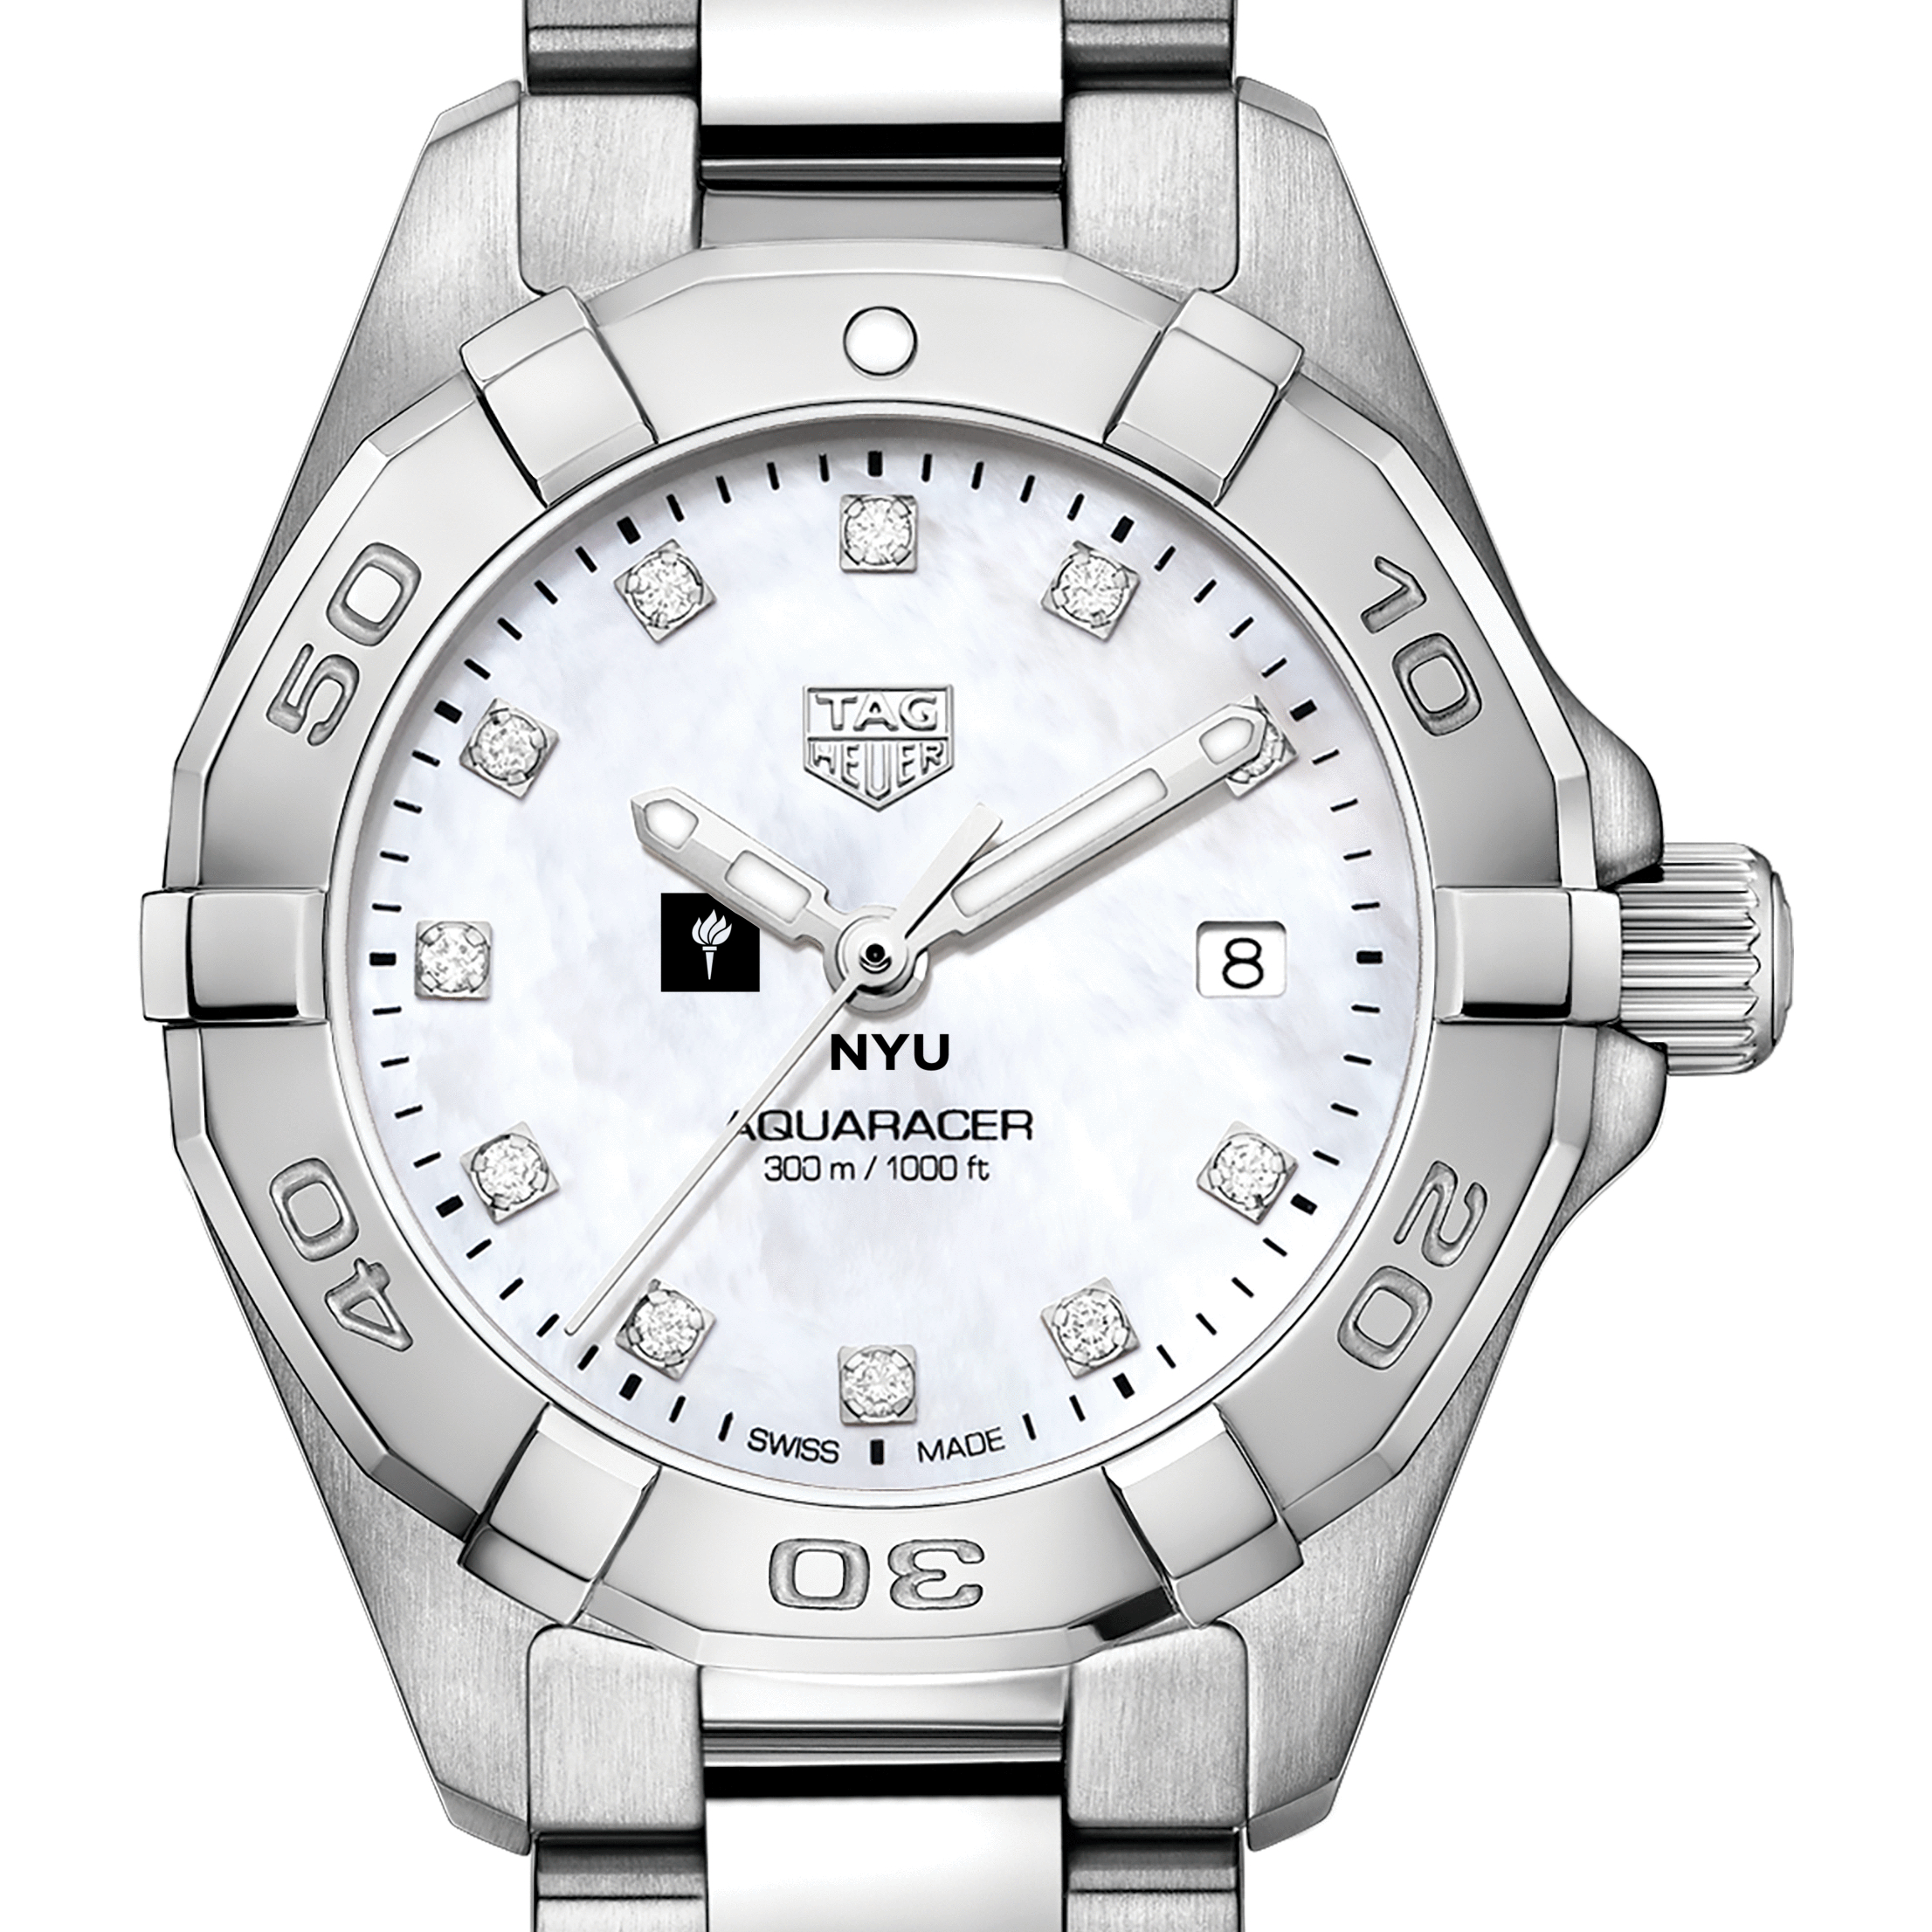 NYU Women's TAG Heuer Steel Aquaracer with MOP Diamond Dial